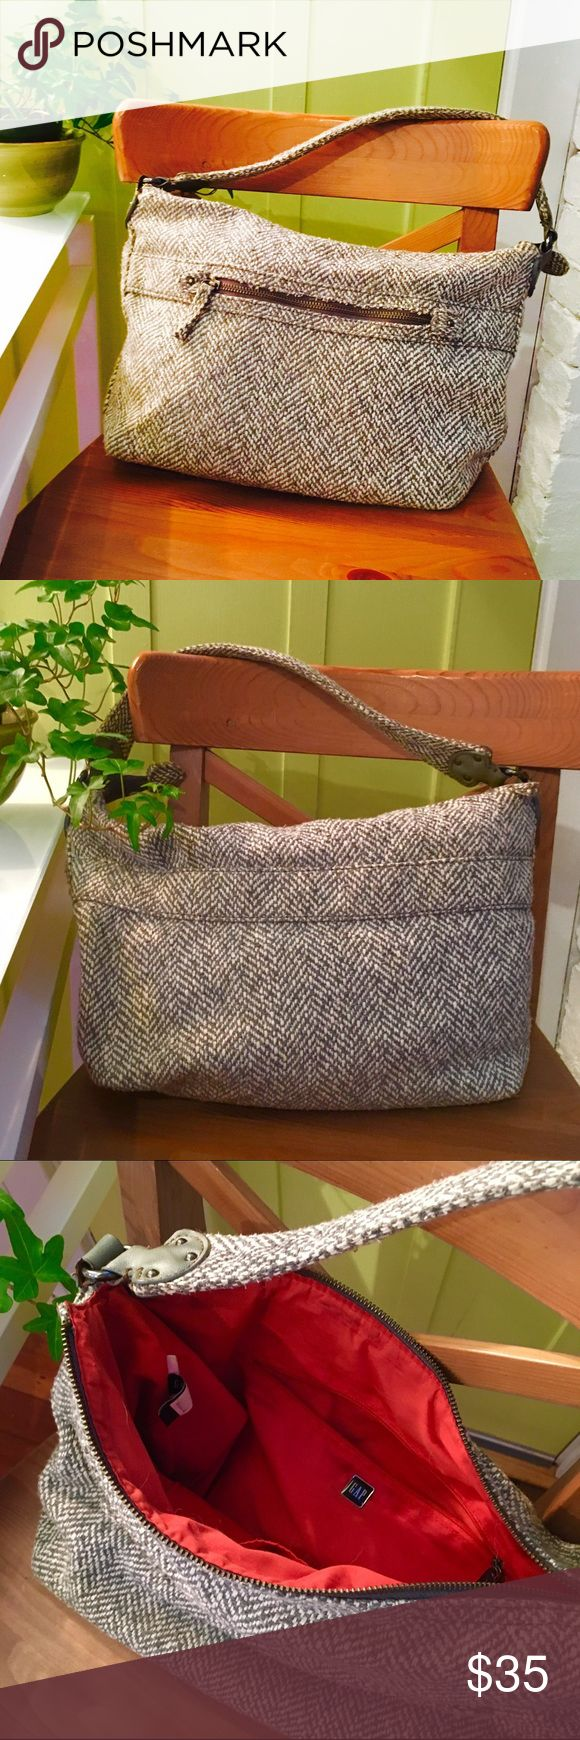 Adorable Grey and White Gap Bag I love this bag, it's so cute. I would keep it if I didn't need the money. Excellent condition, no visible damage or wear and tear. GAP Bags Shoulder Bags